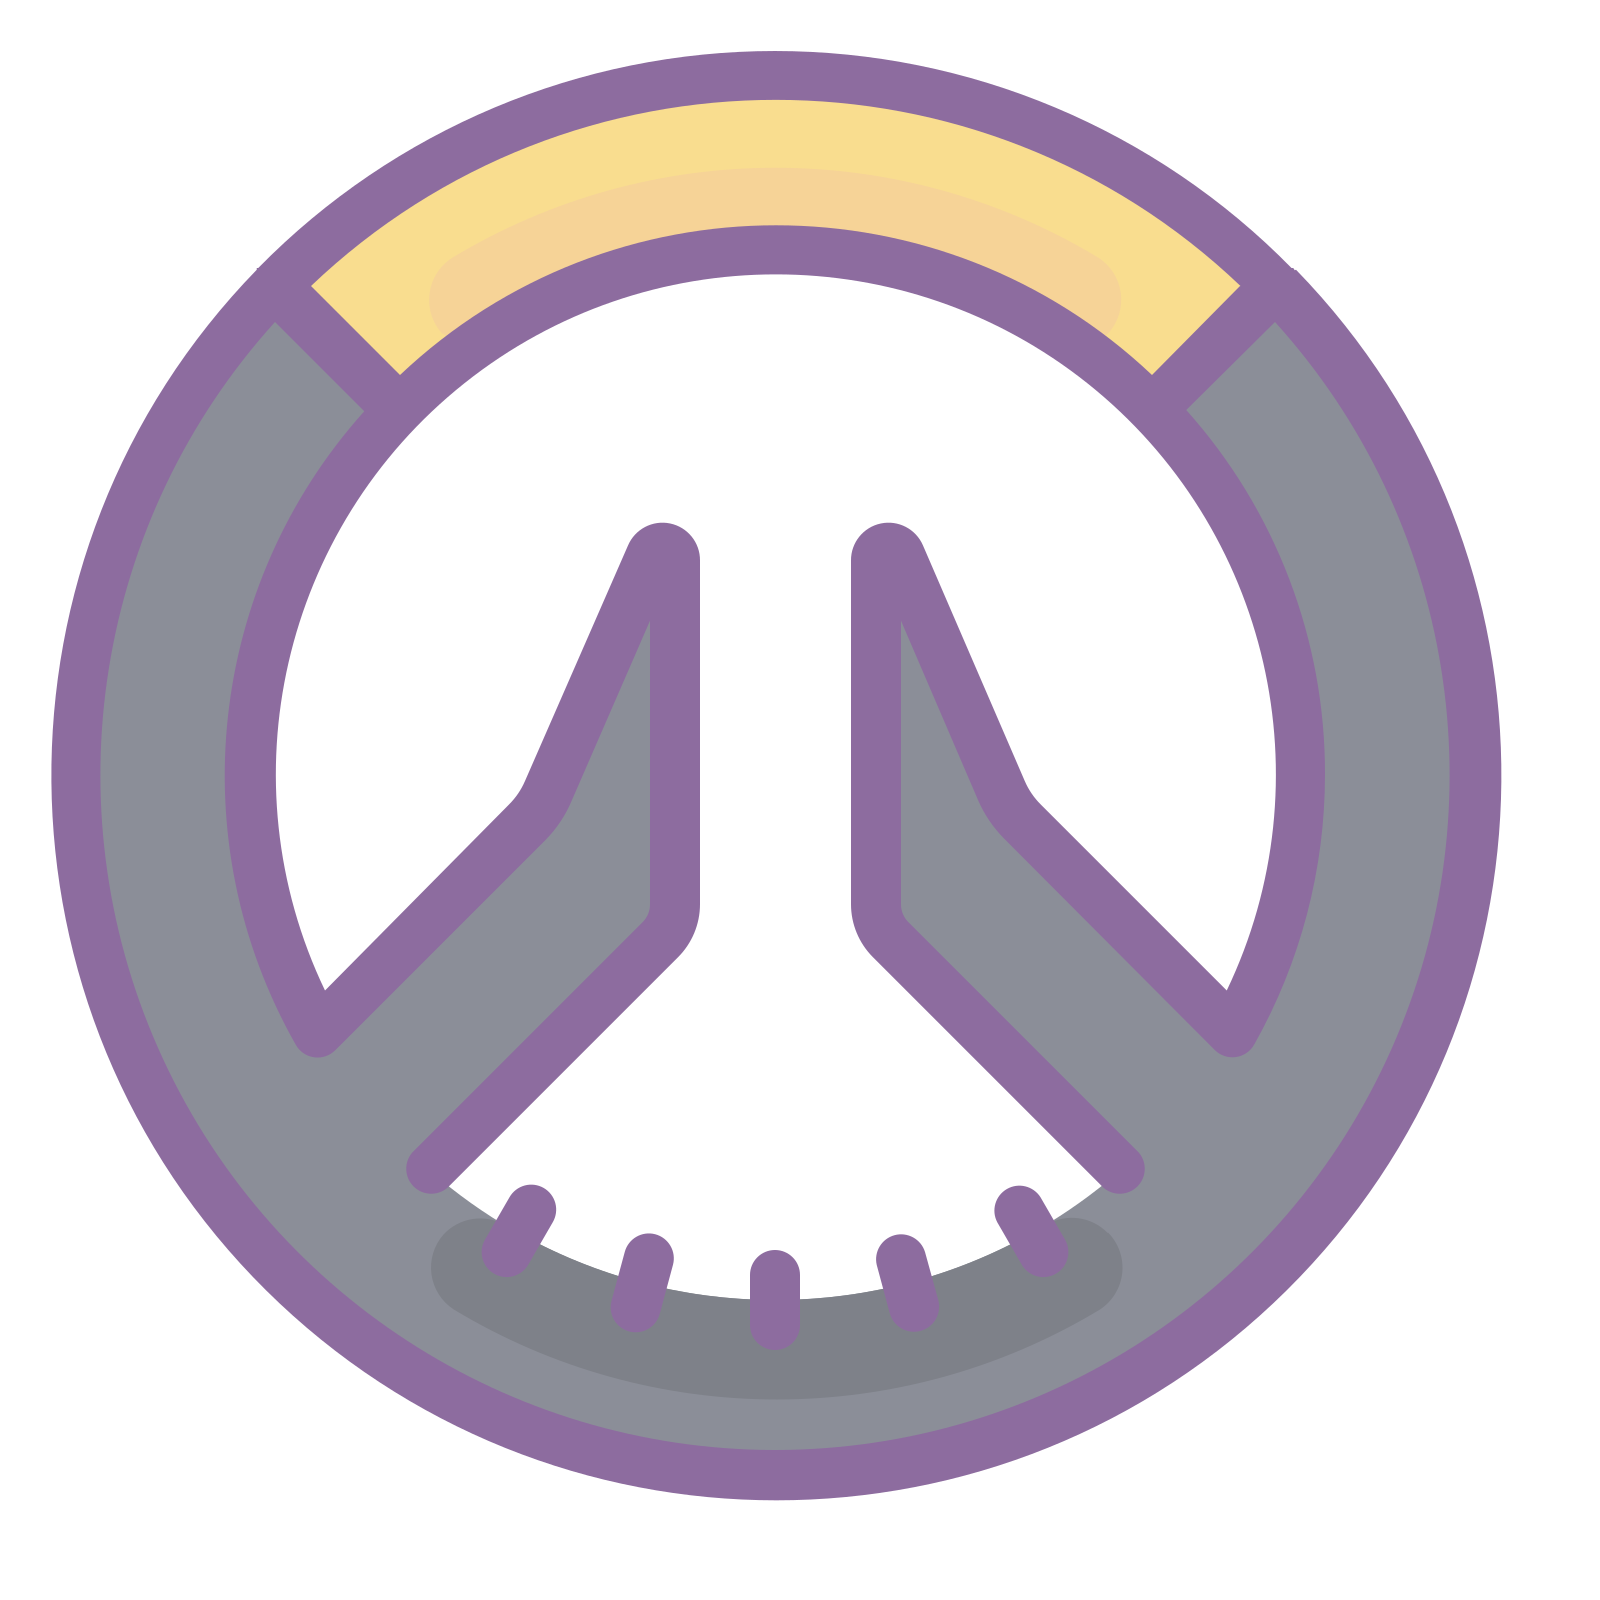 Icon free download and. Overwatch icons png